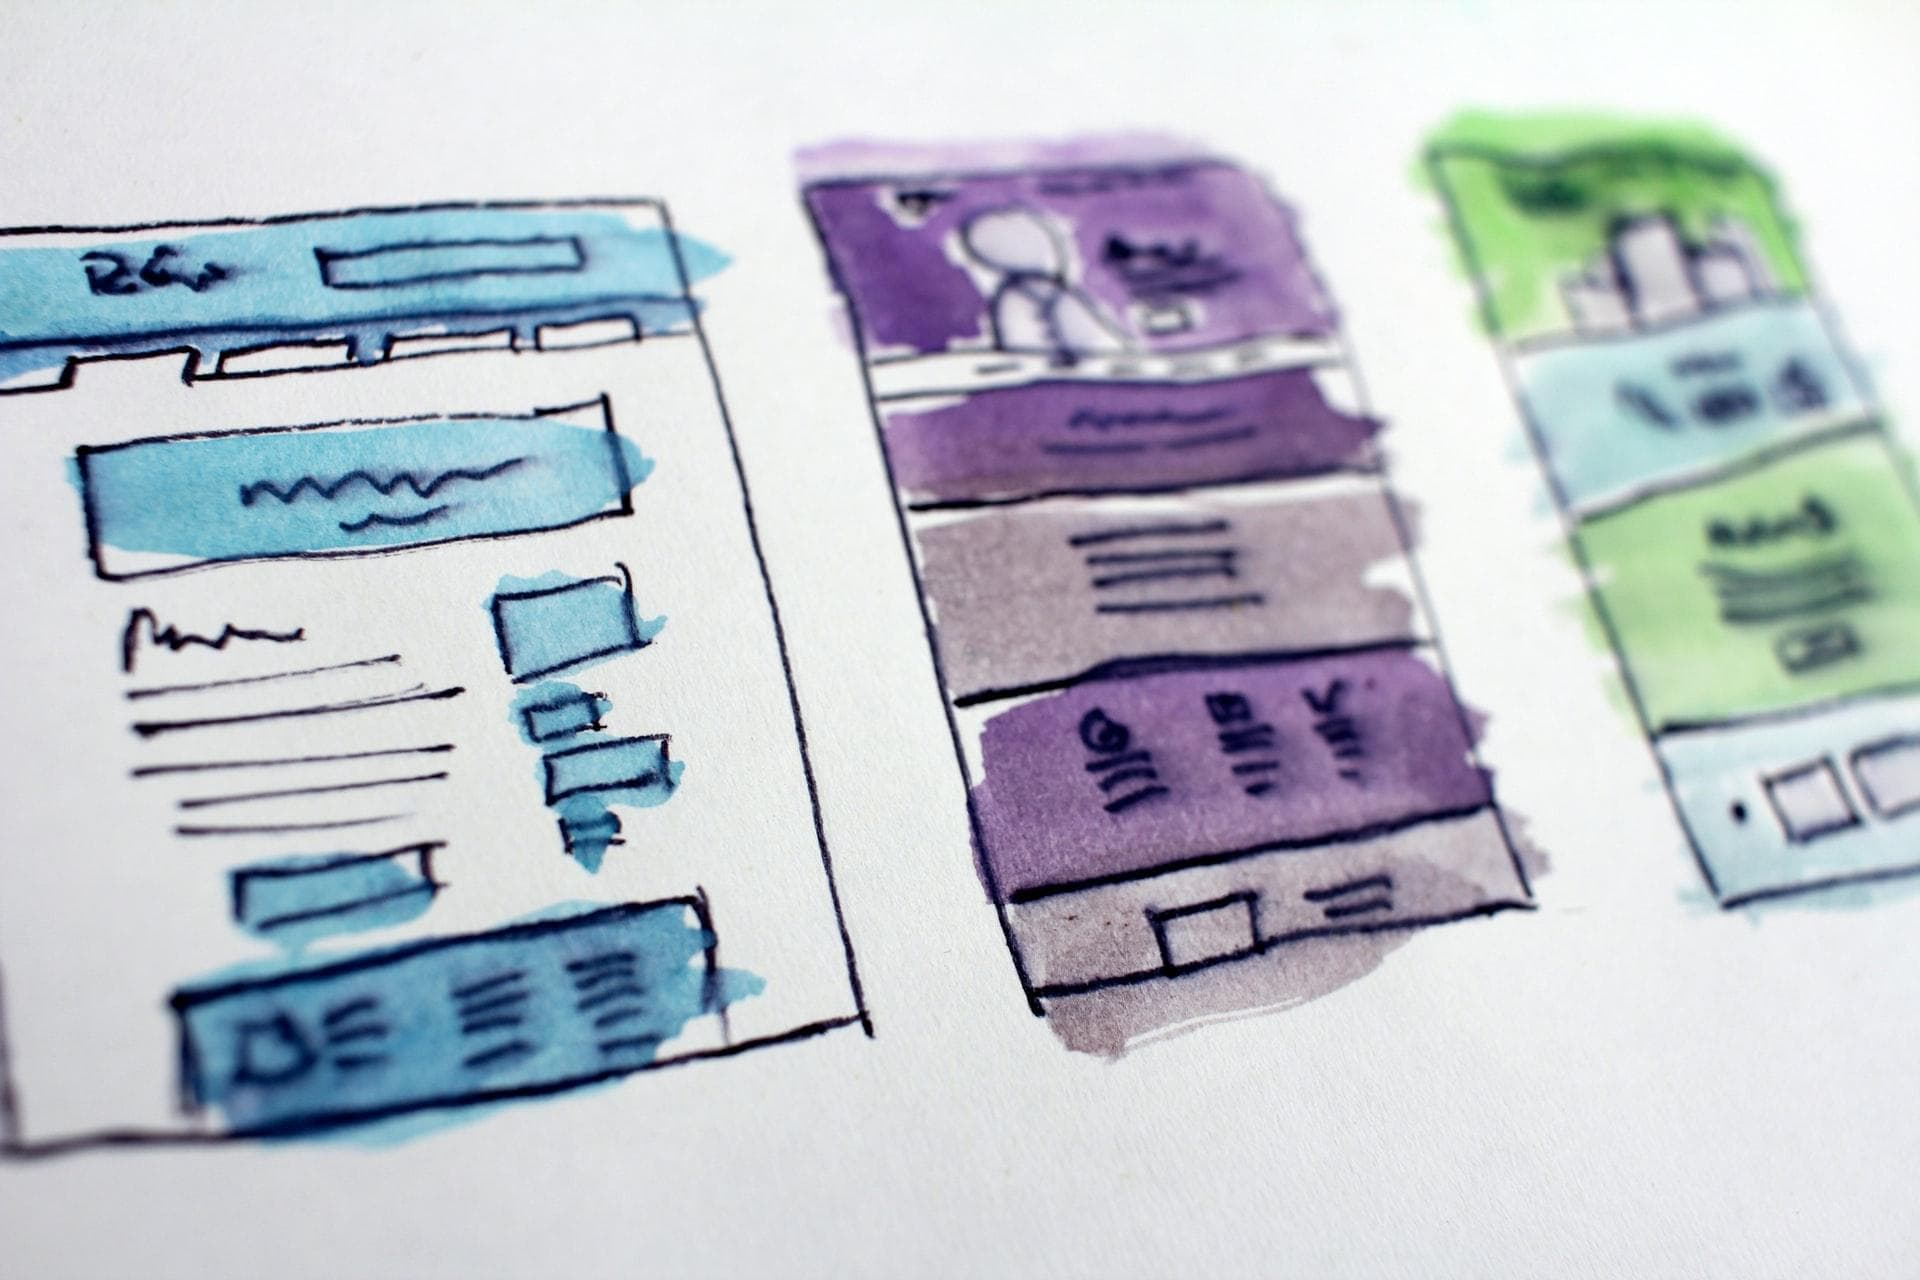 rough drafts of a website design